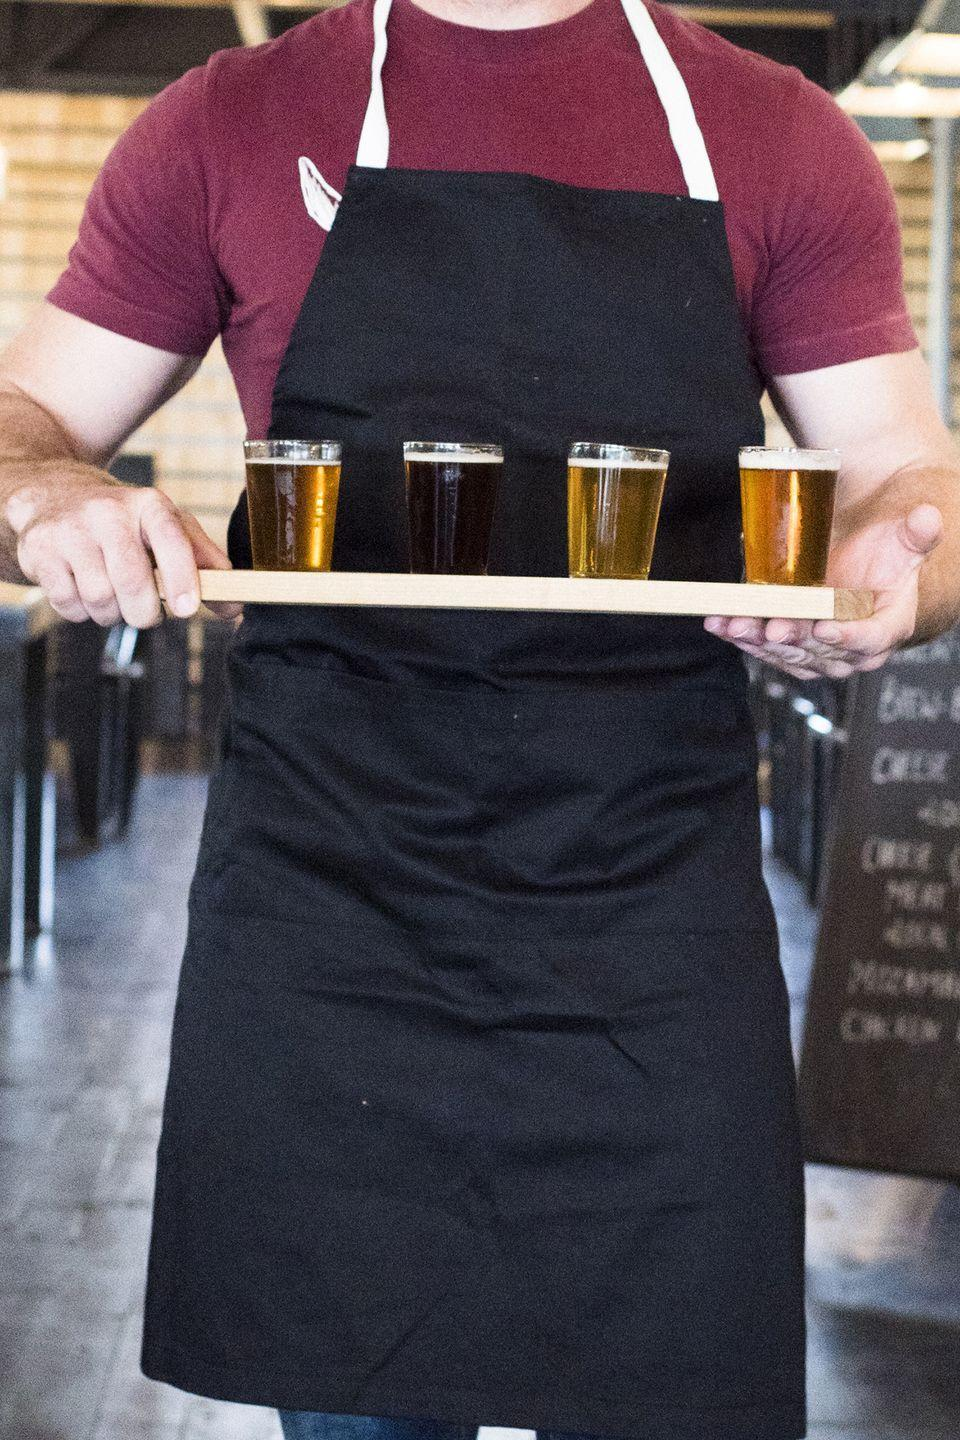 <p>Venture out to a local brewery or distillery to tour the grounds and learn more about your favorite craft beers or spirits, then finish up with a post-tour tasting.</p>